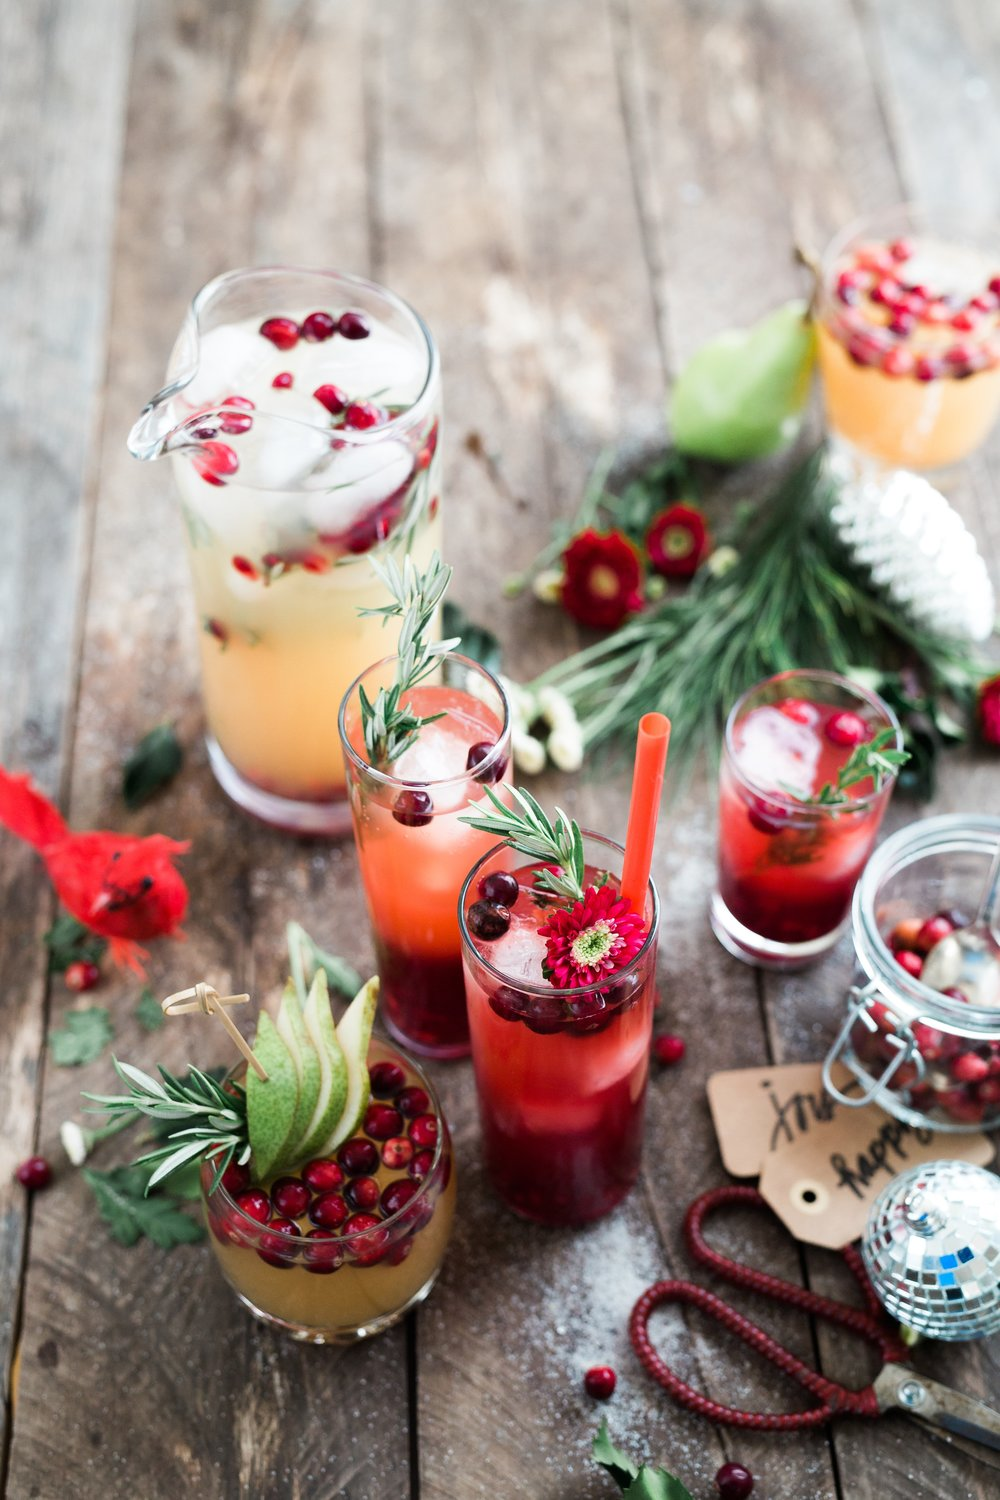 Let the summer season begin, fresh cranberry, vodka and rosemary cocktails.